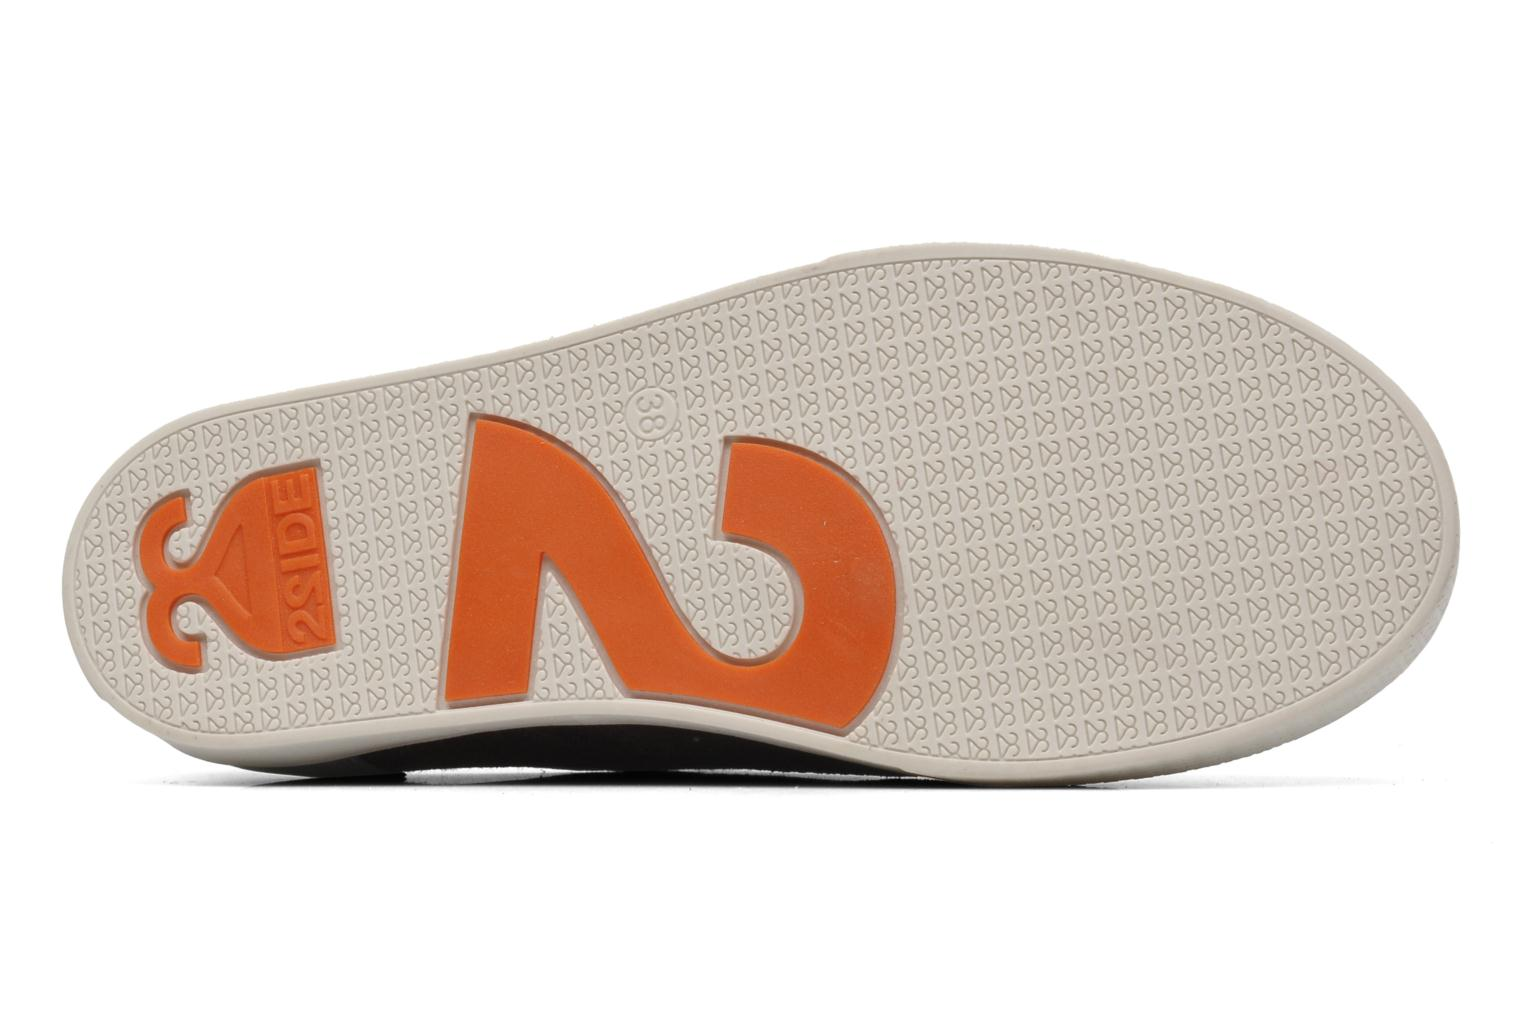 Sneakers 2 Side 2S - SURF Bordeaux se foroven